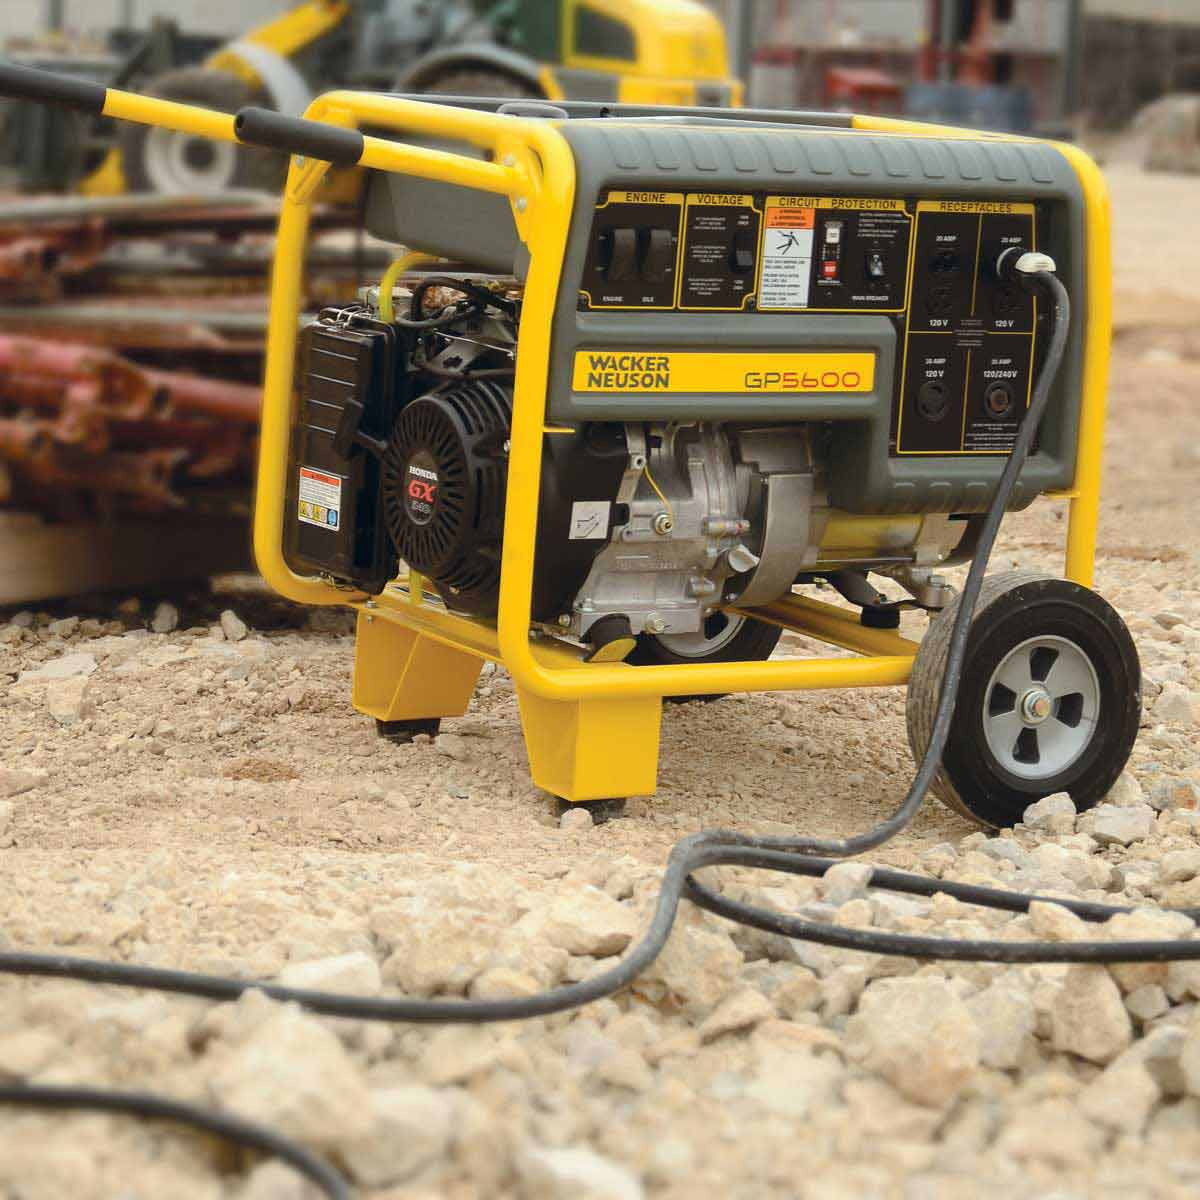 GP series portable generator kit